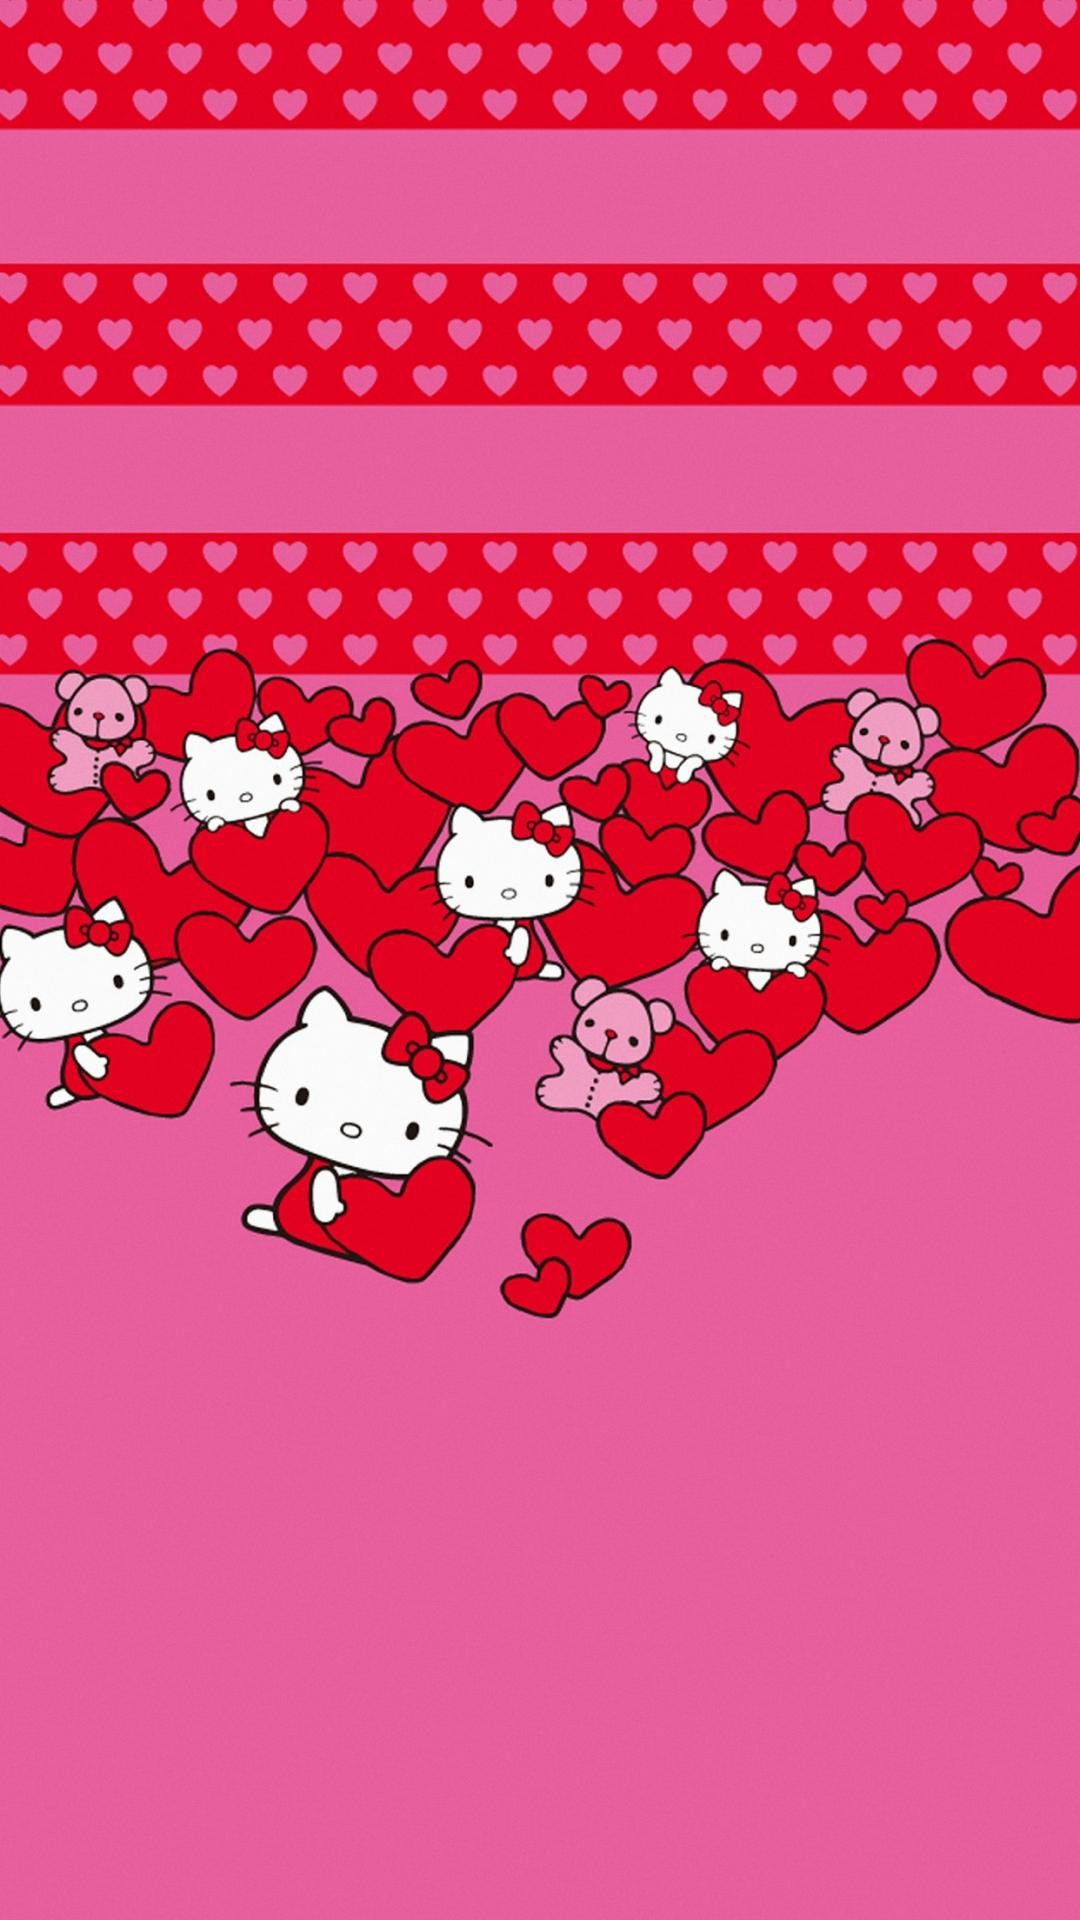 Wallpaper Hello Kitty Love (69+ images)